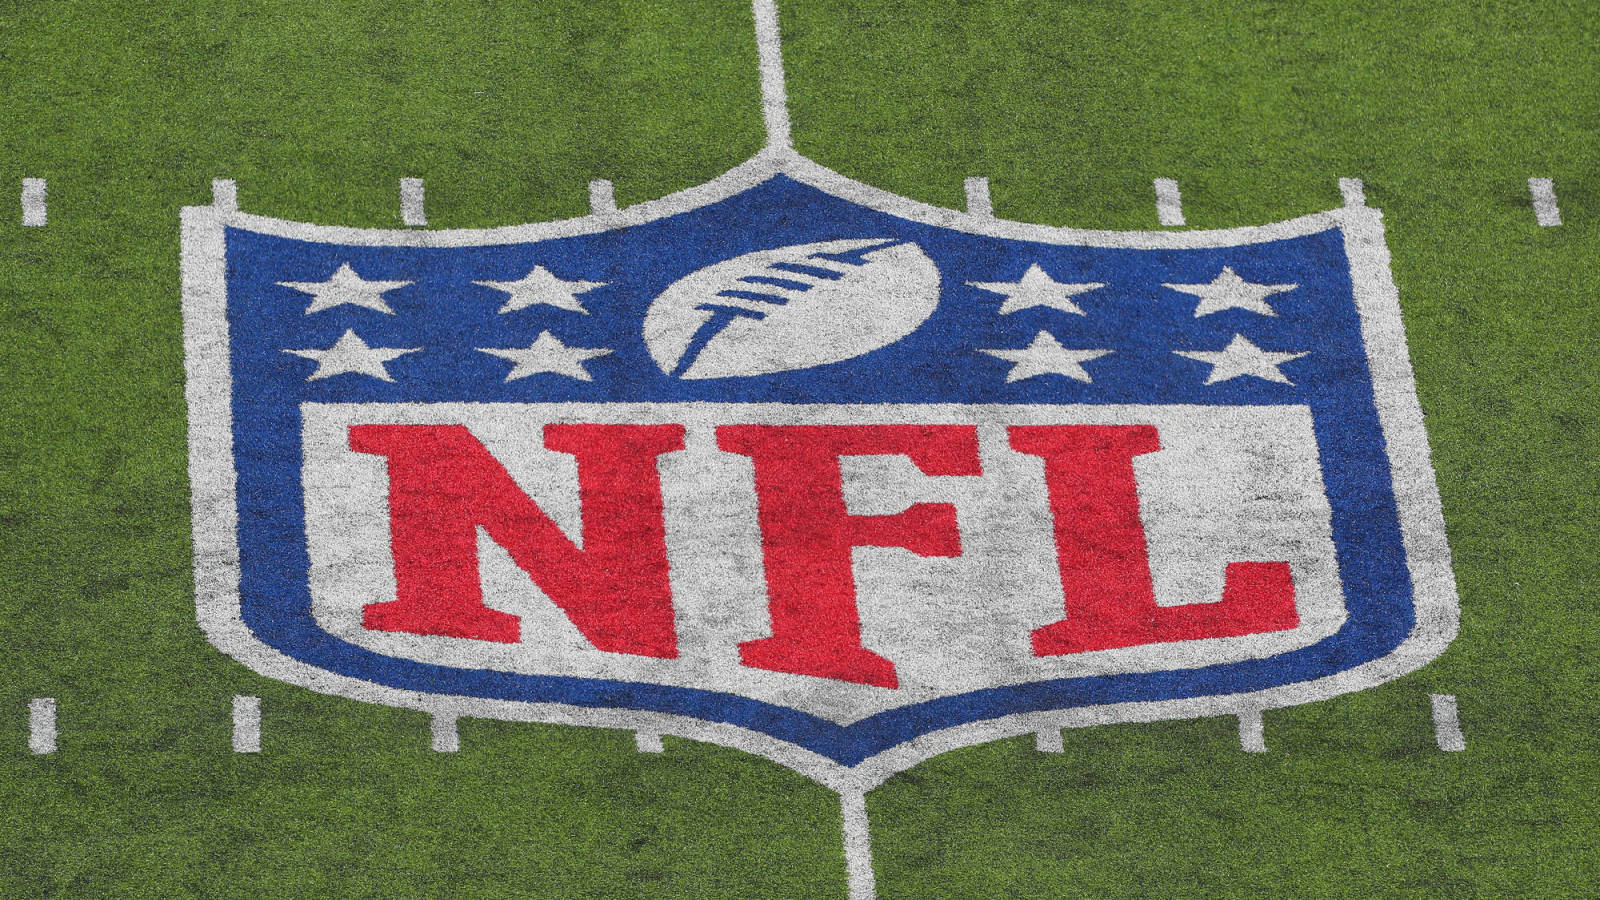 The NFL wants to identify unvaccinated players during games and practices